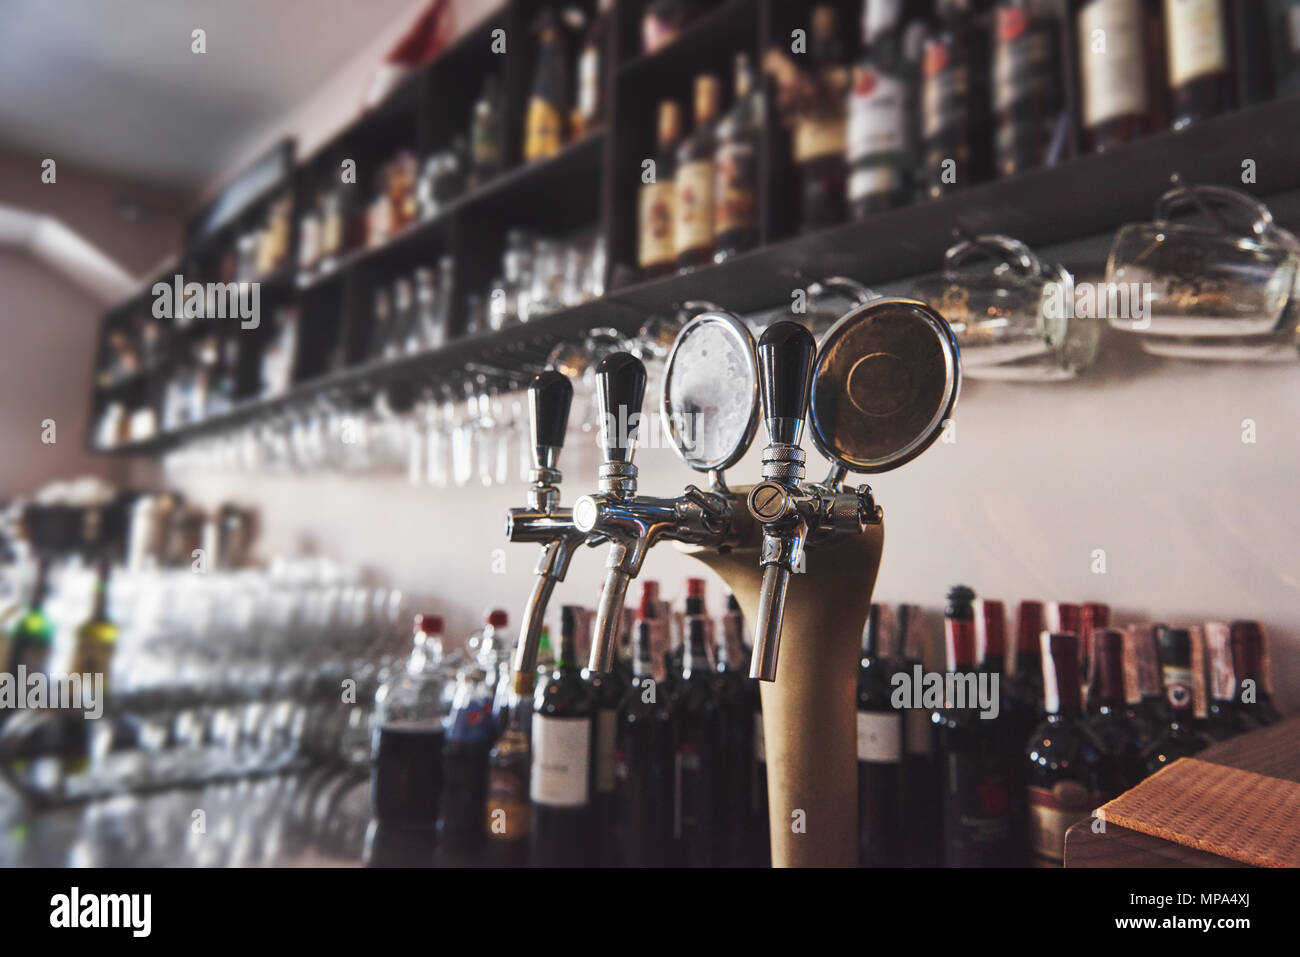 ready to pint of beer on a bar in a traditional style wooden pub Stock Photo